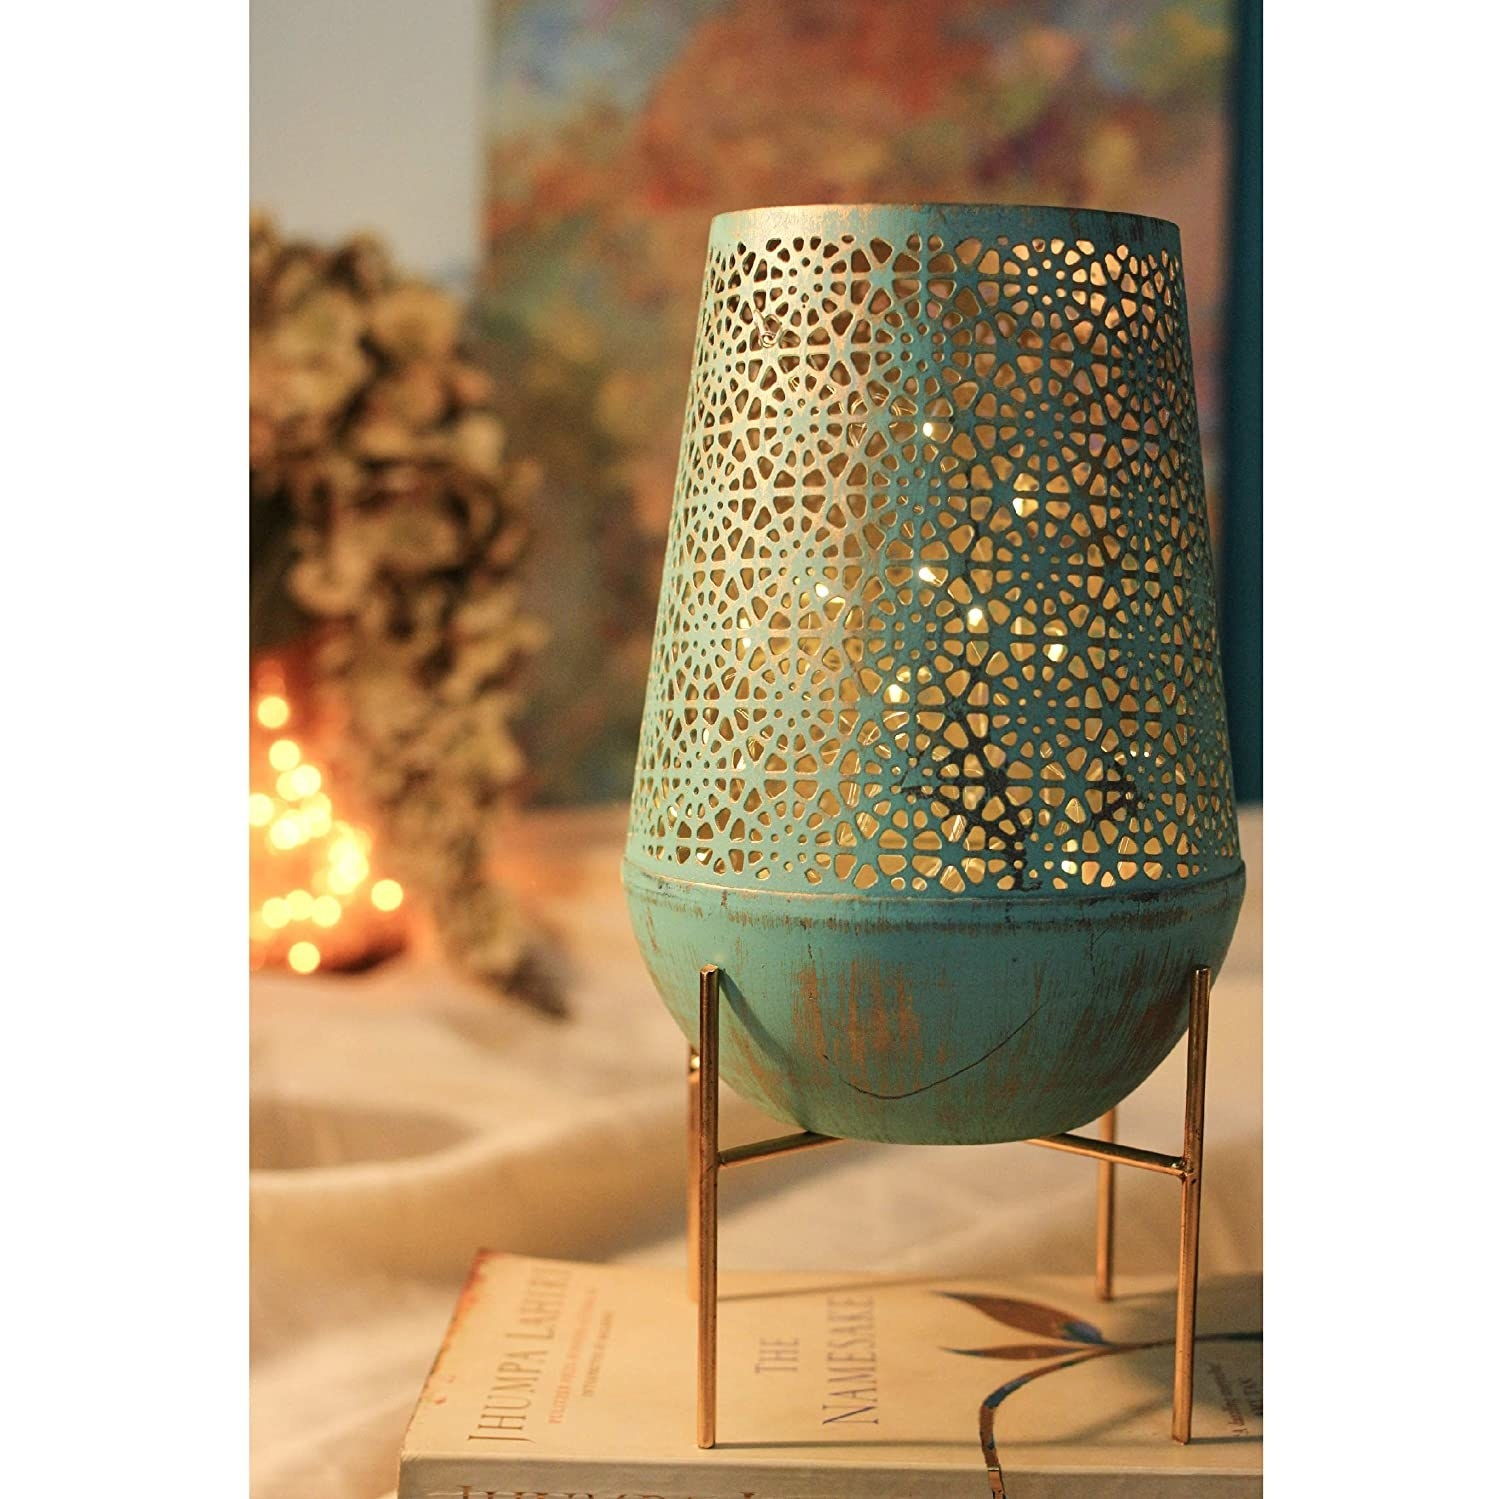 A sea green Moroccan lamp on top of a book